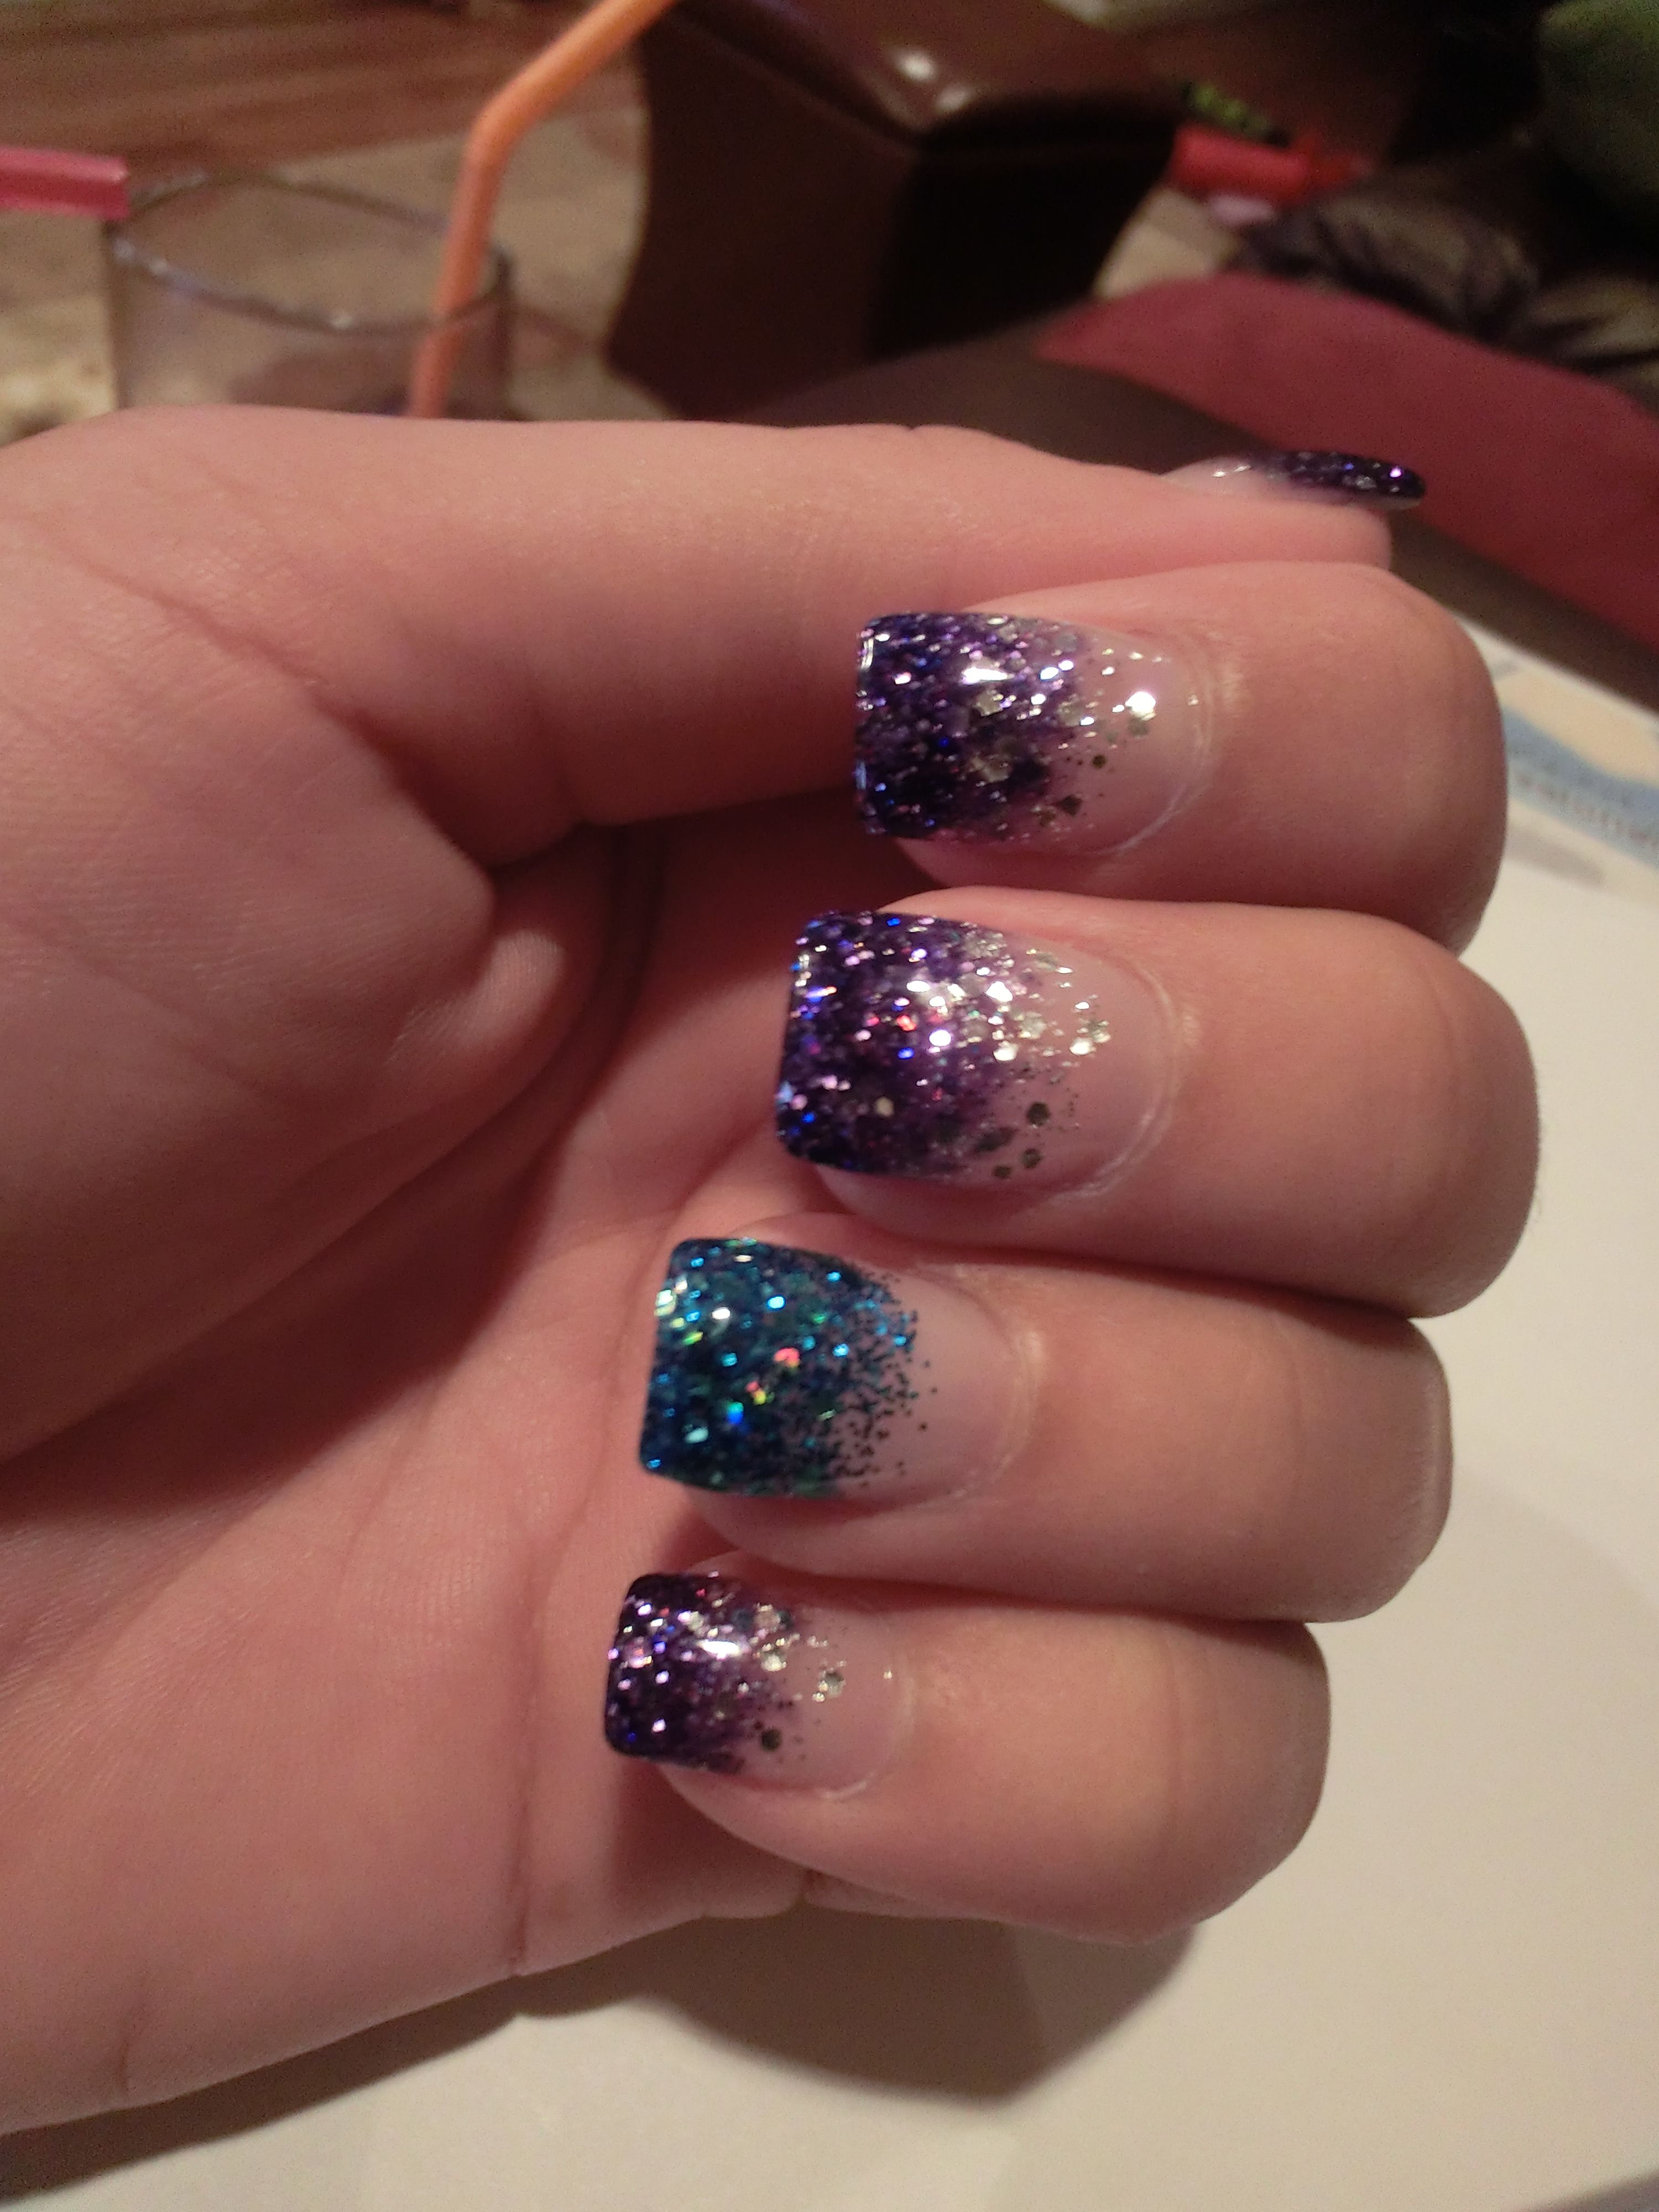 UV Glitter Gel Nails that I CANNOT live without <3 | nails ...